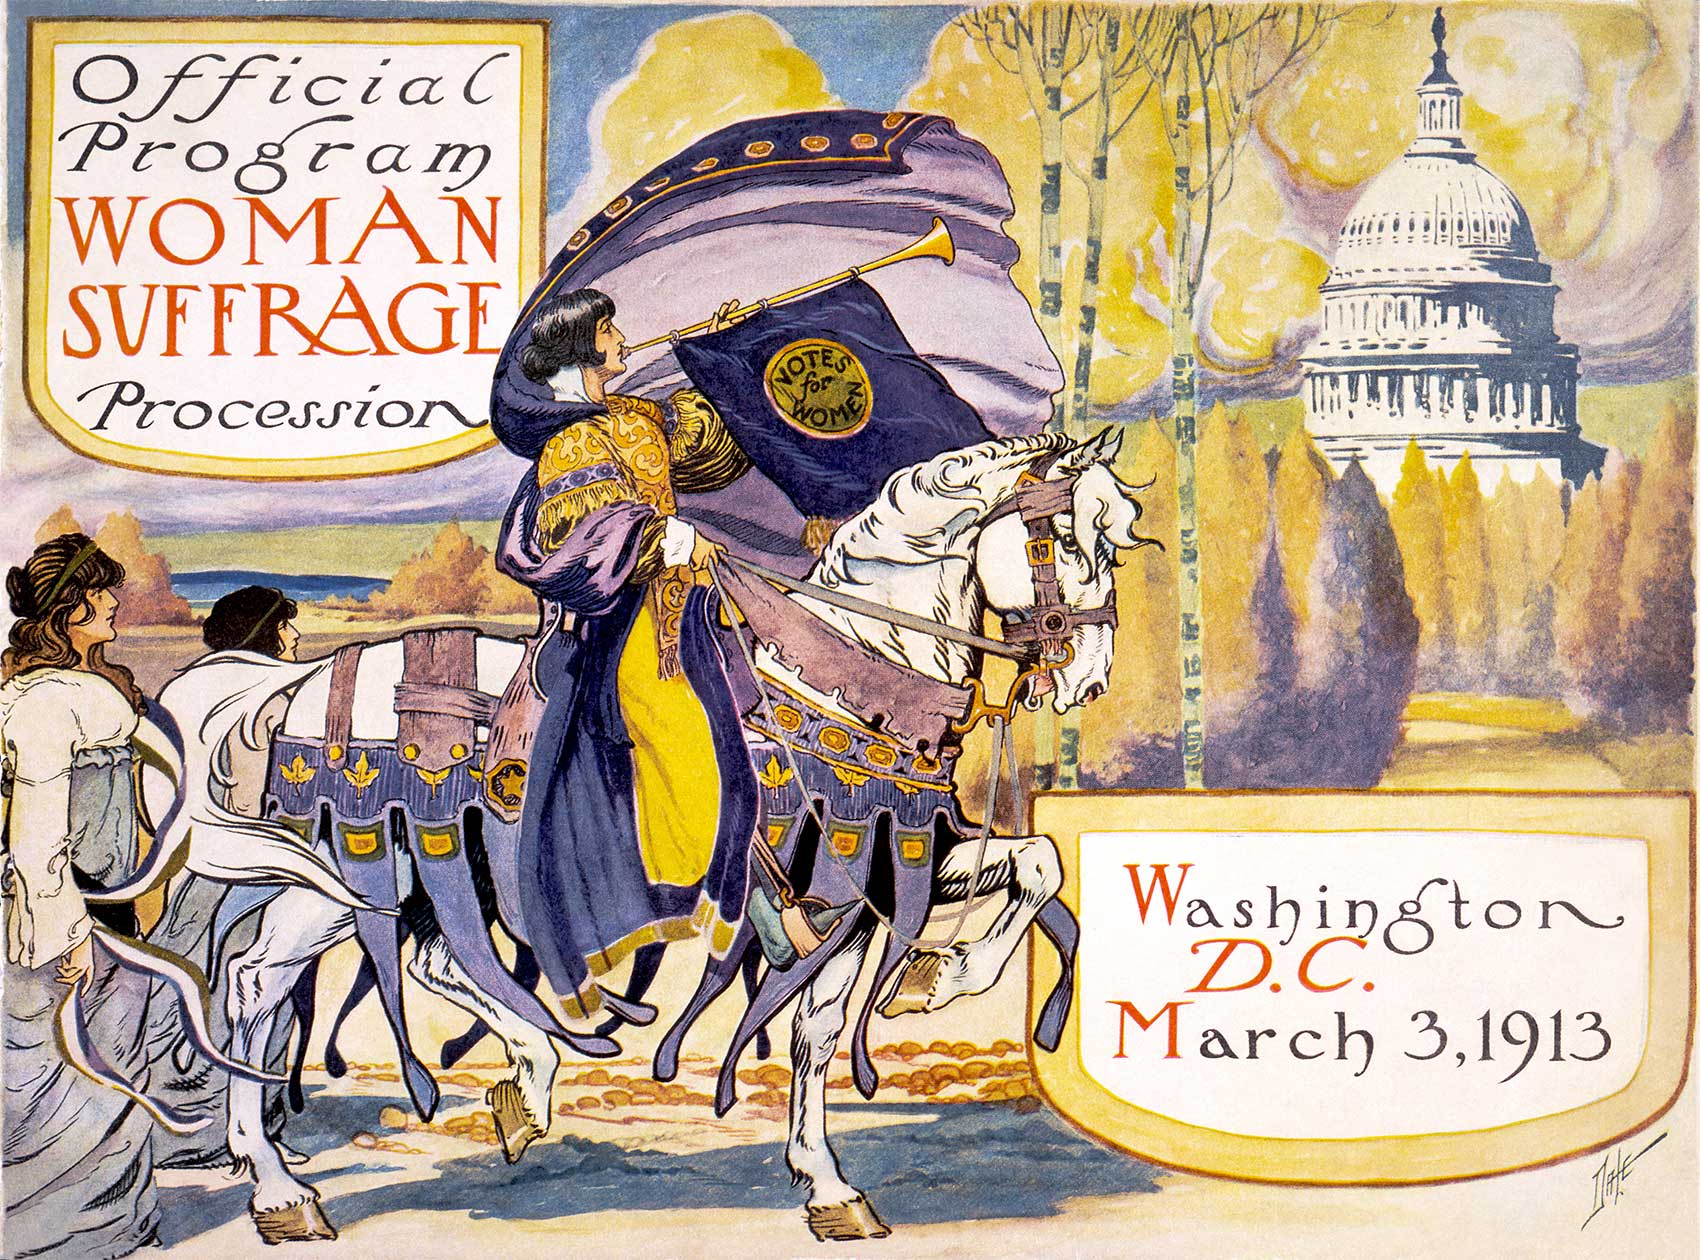 1913 program of the Woman Suffrage Procession in Washington, D.C. showing a woman on a white horse blowing a bugle.